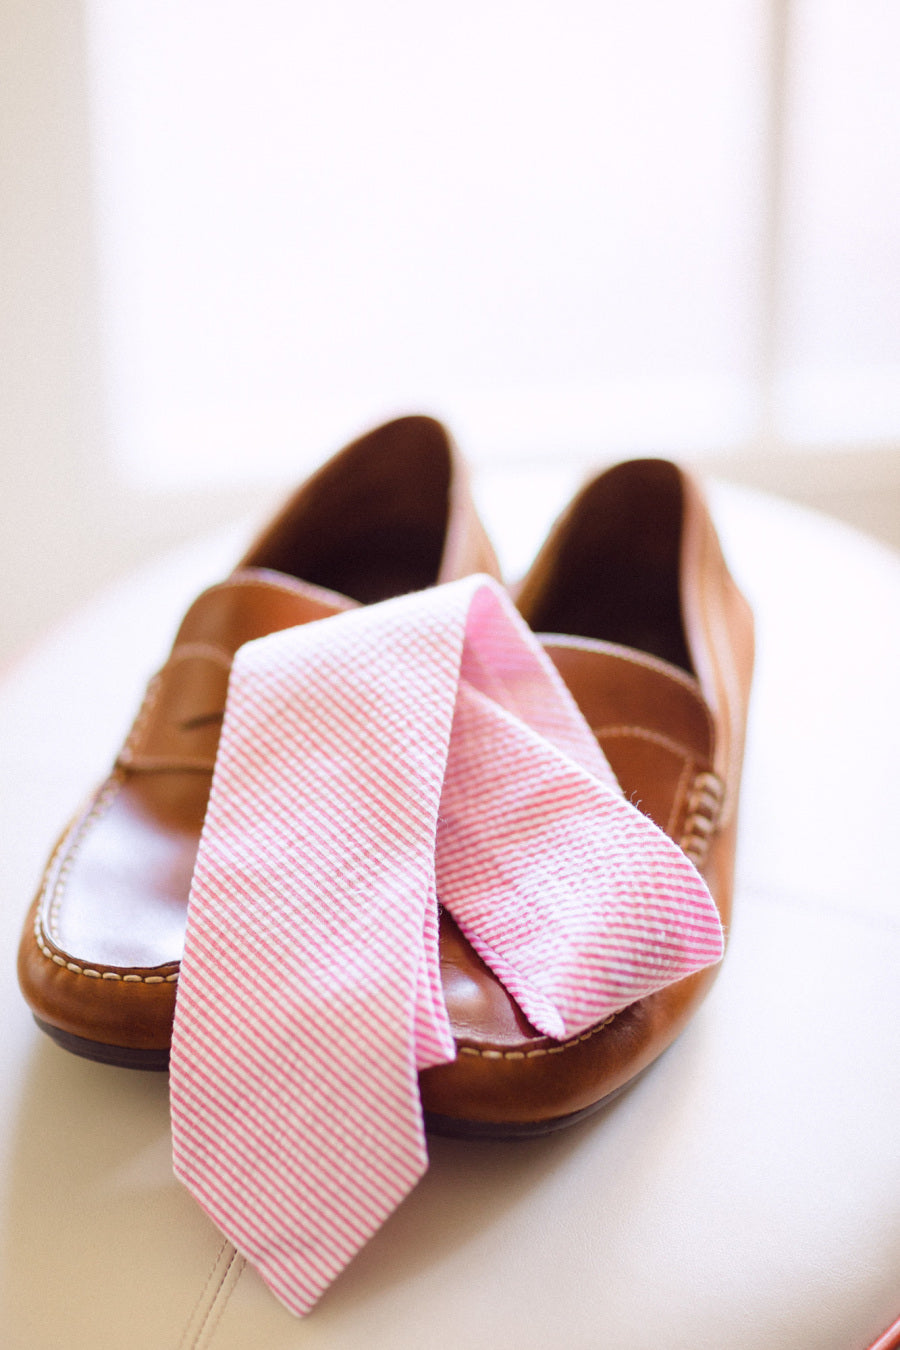 Seersucker Tie- Pink - Just Madras